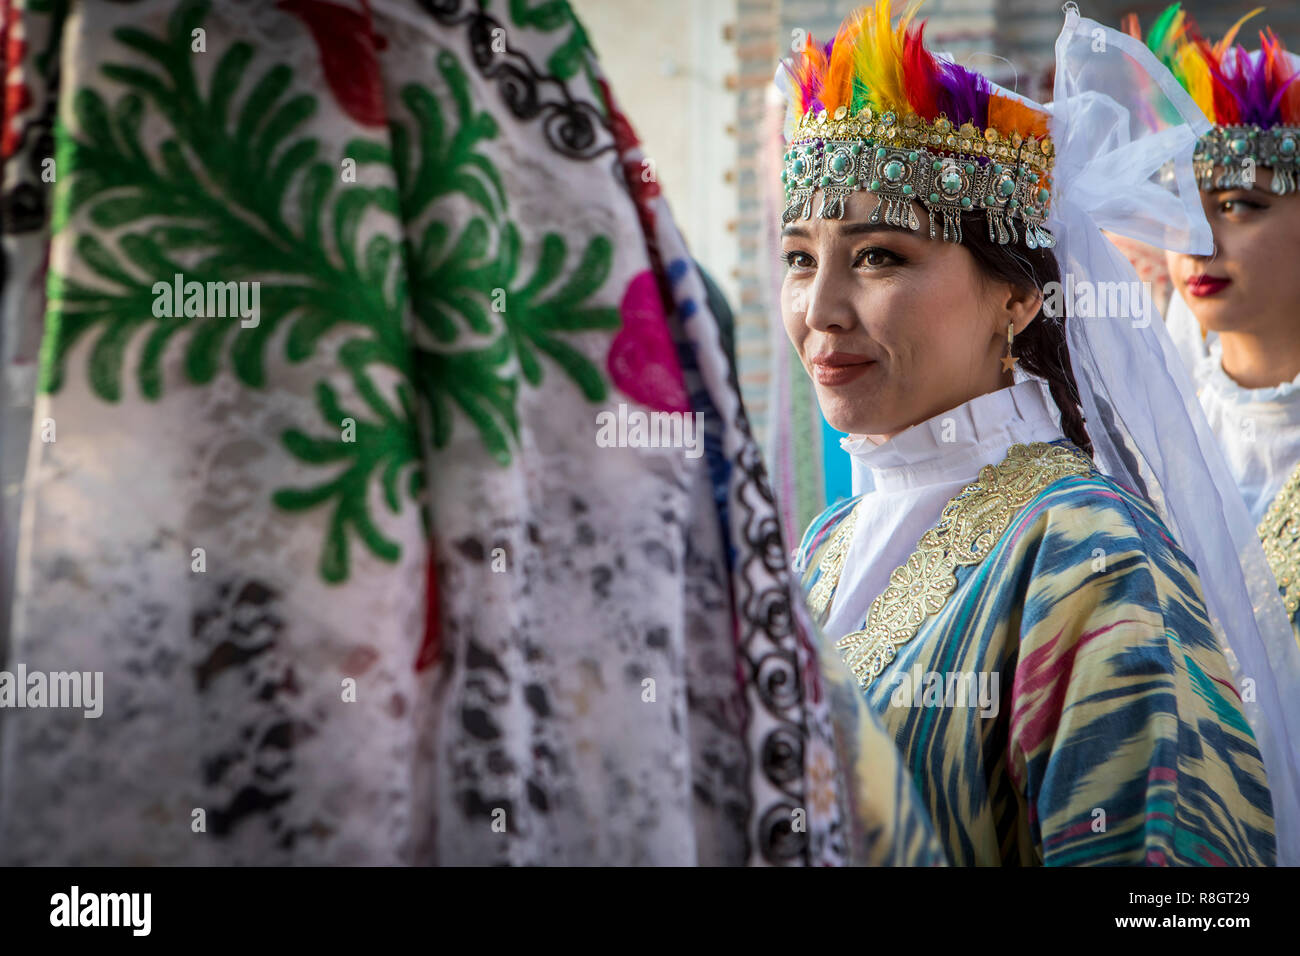 woman, folk dancers, in traditional costume, dress, suit, in Rukhobod Mausoleum, Samarkand, Uzbekistan Stock Photo